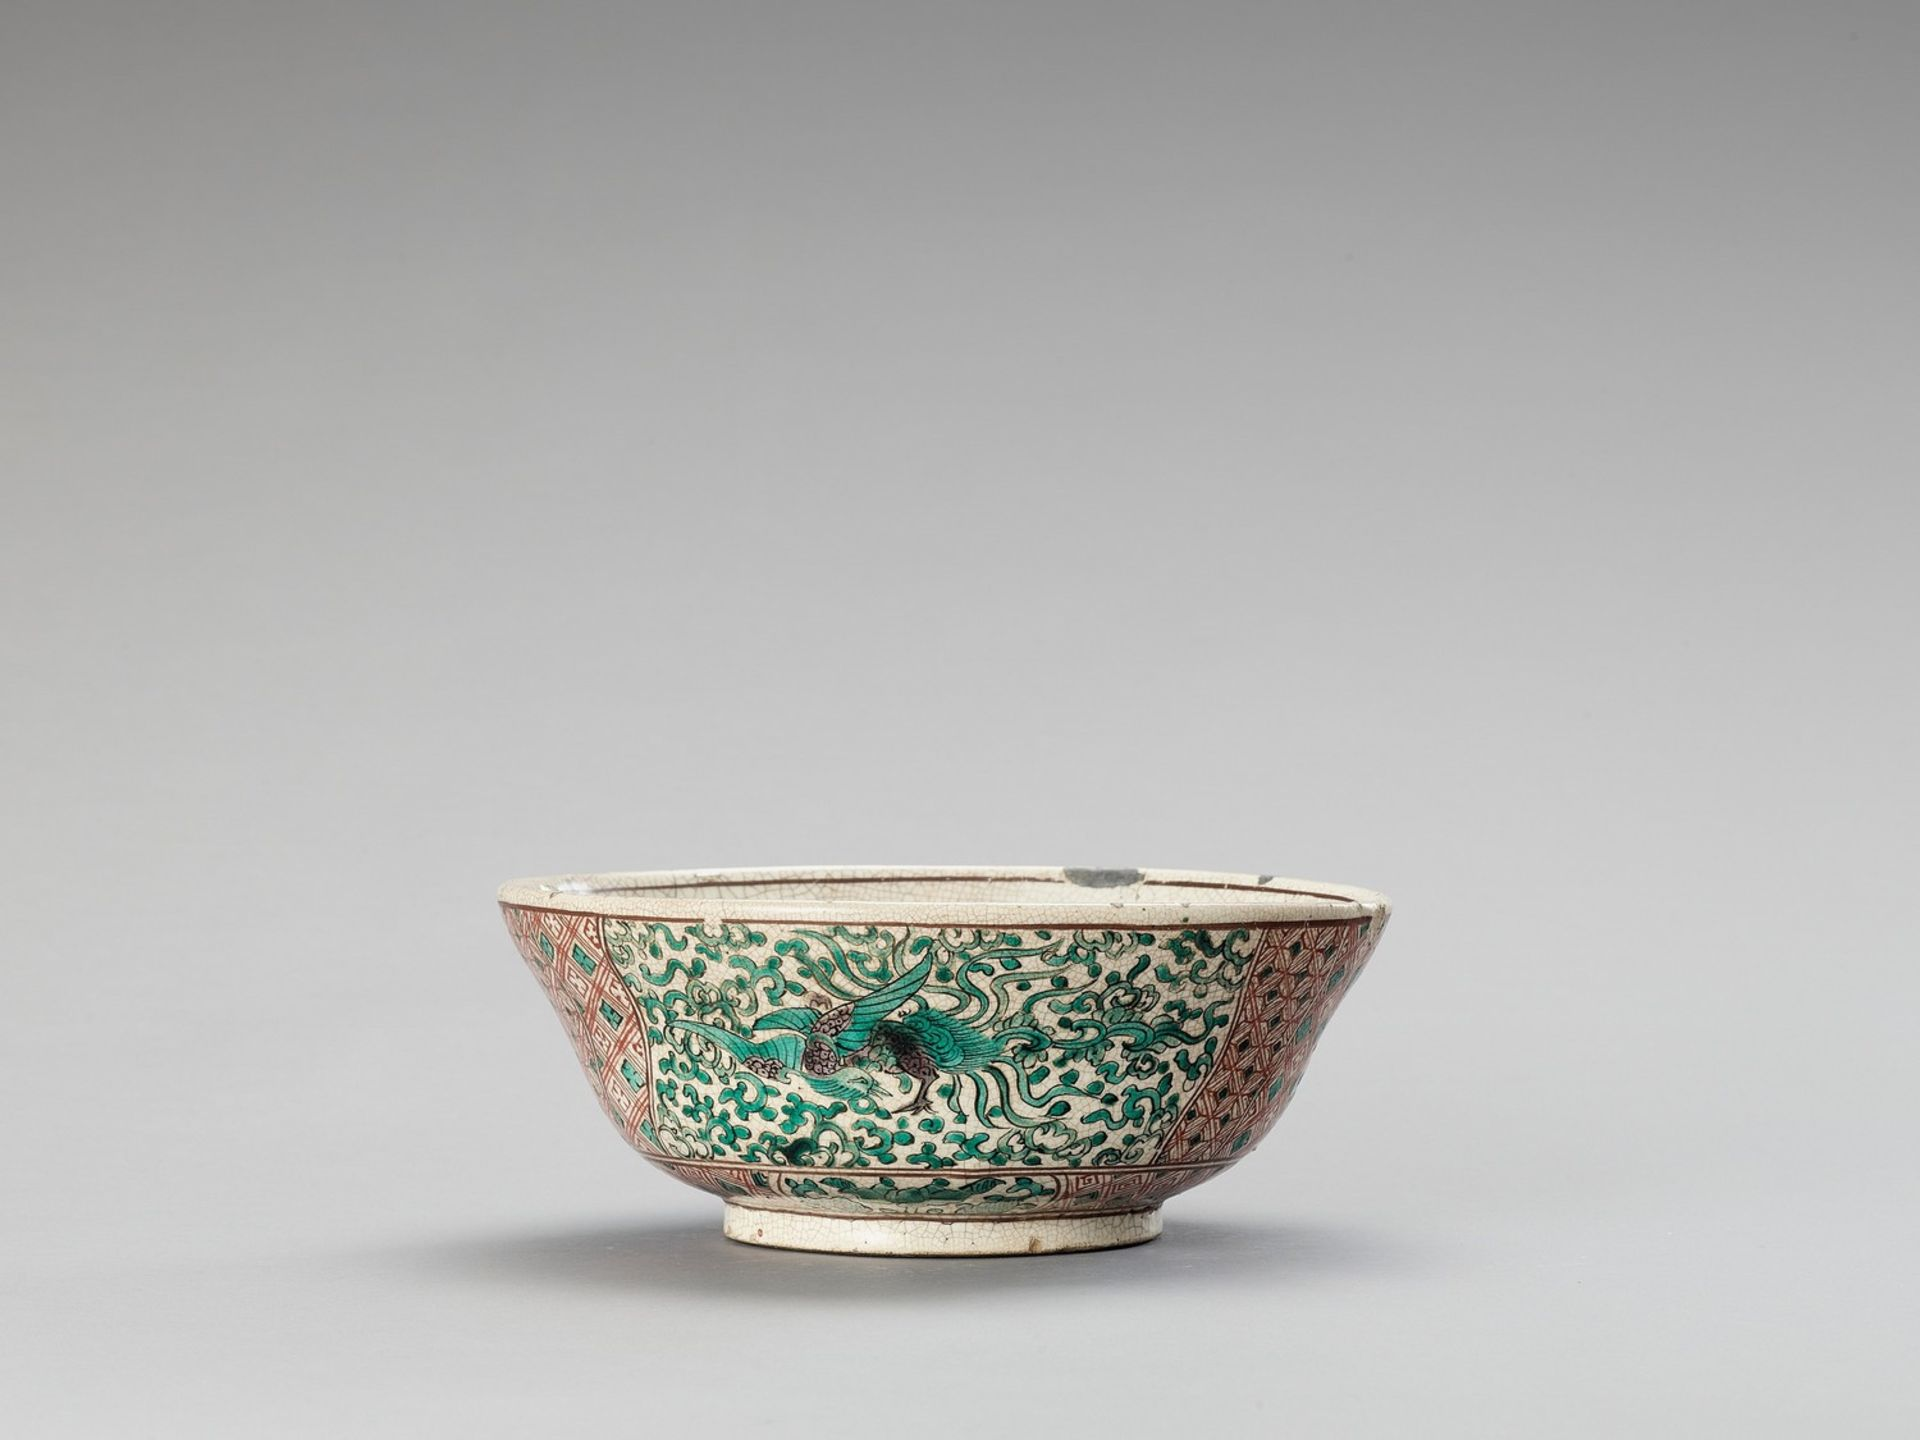 A FAMILLE VERTE CRACKLE-GLAZED BOWL - Image 3 of 6